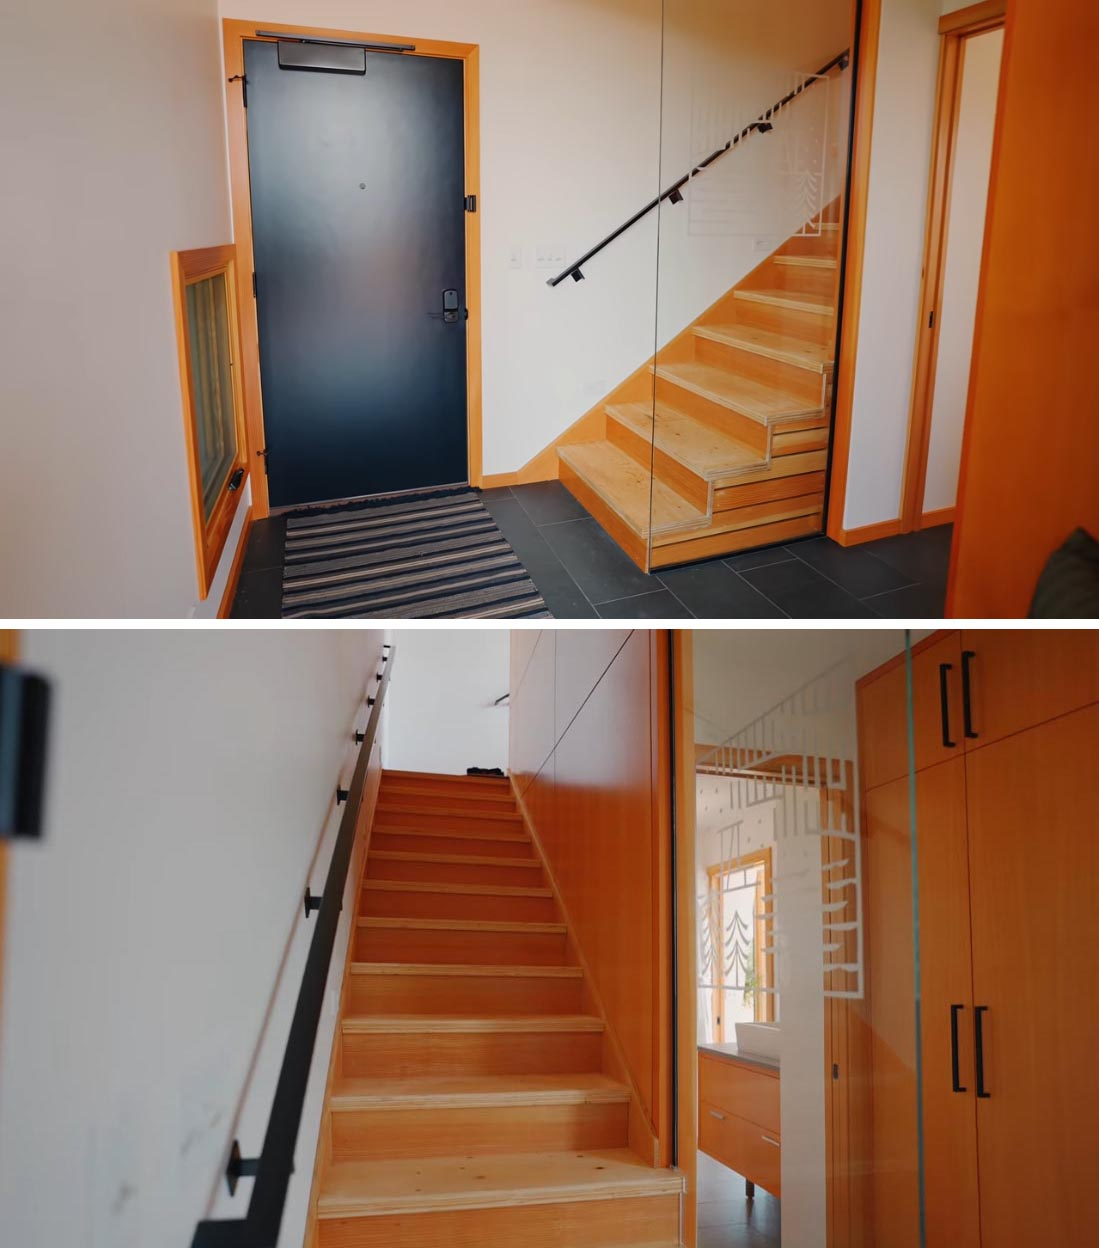 A wood-lined staircase by the front door connects the upper level of the cabin.